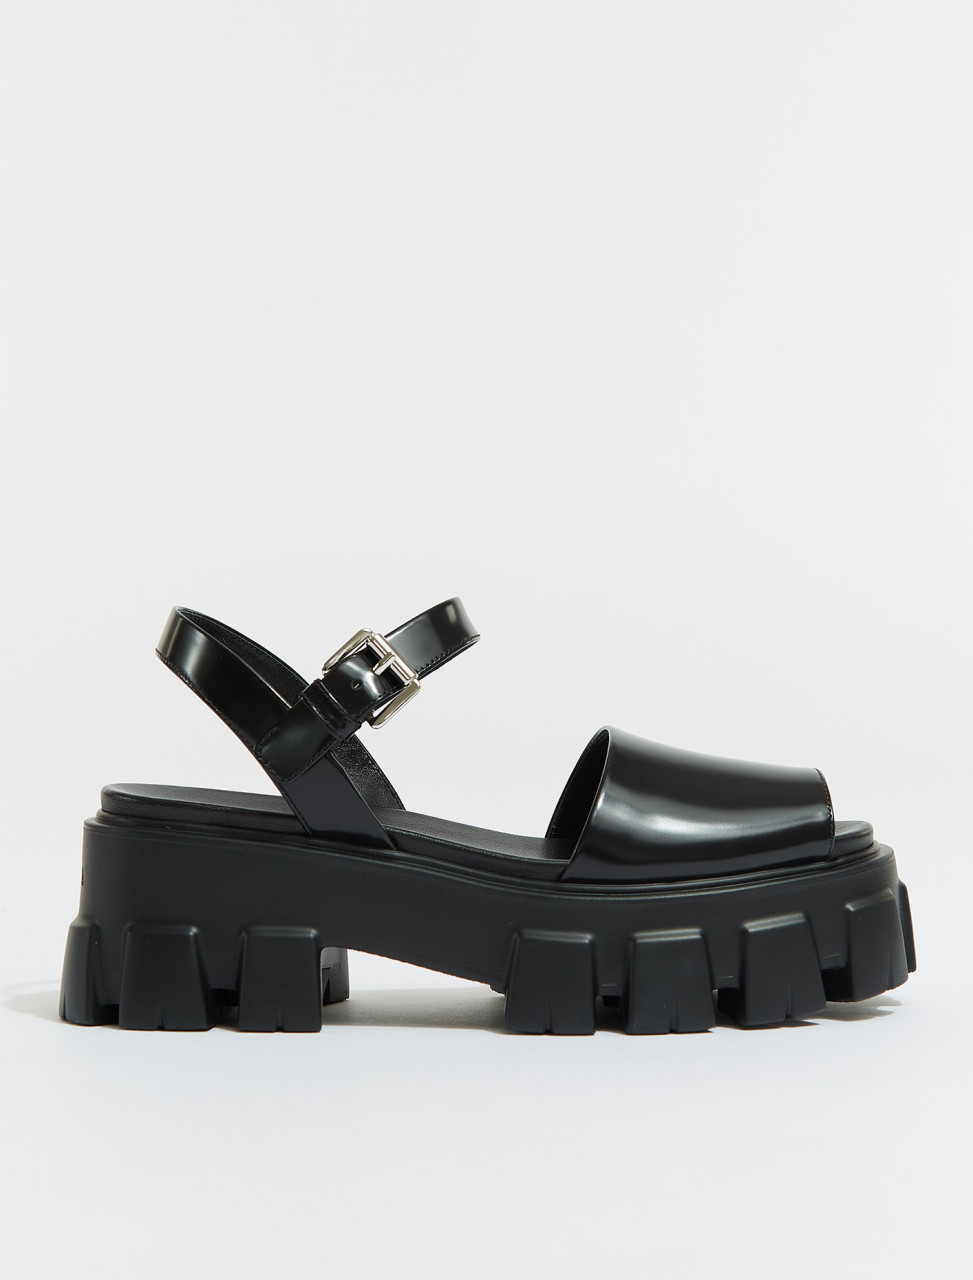 1X526M-F0002 PRADA MONOLITH BRUSHED LEATHER SANDALS BLACK